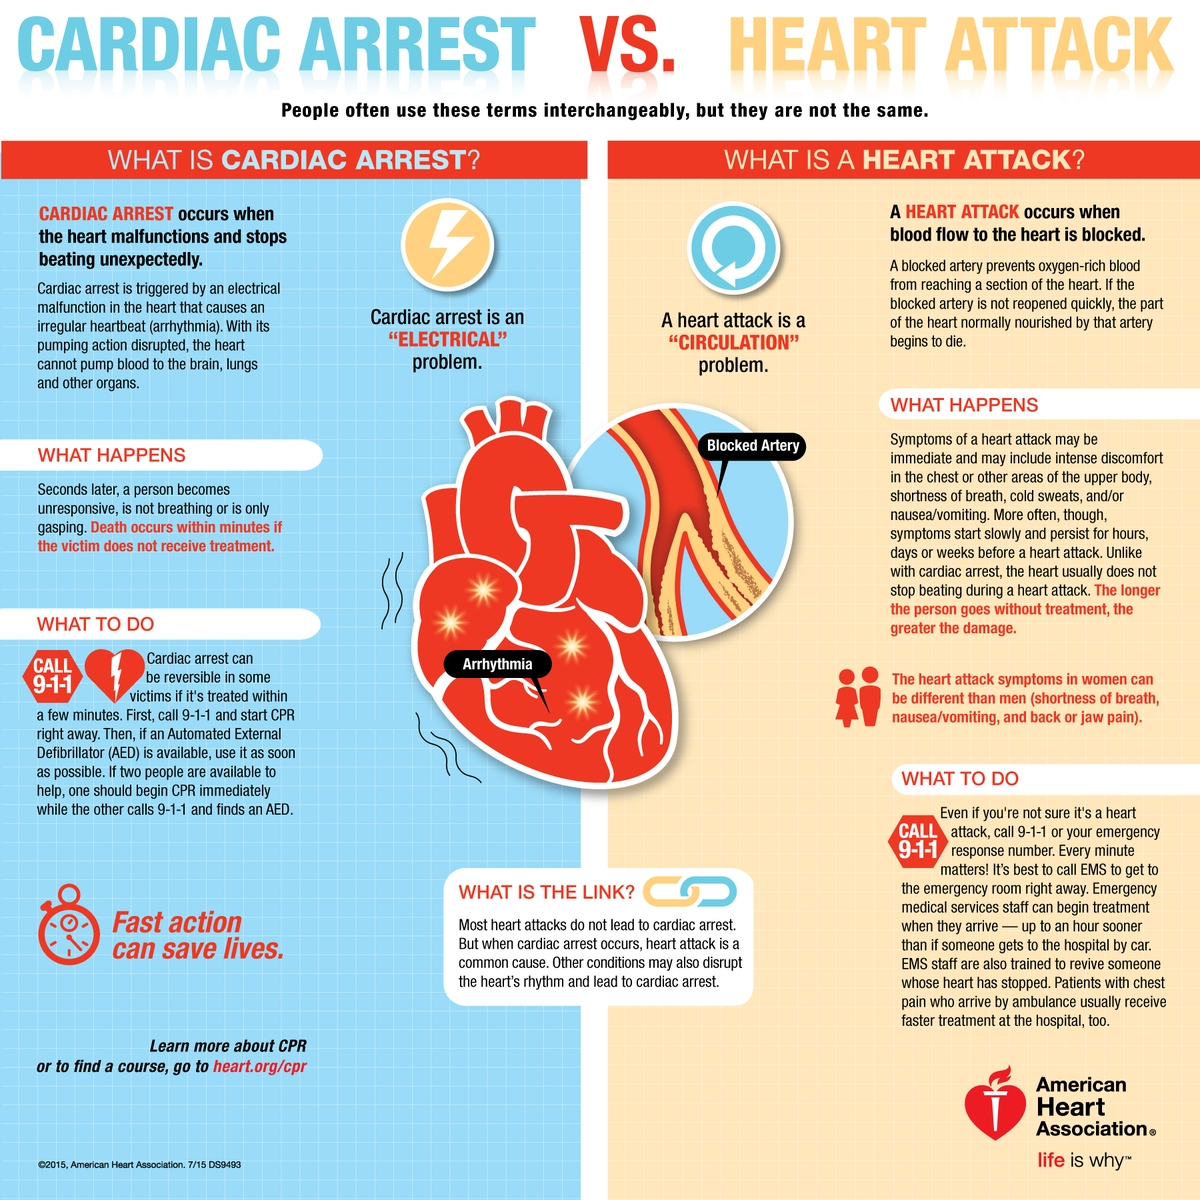 Cardiac Arrest or Heart Attack? A side-by-side comparison.